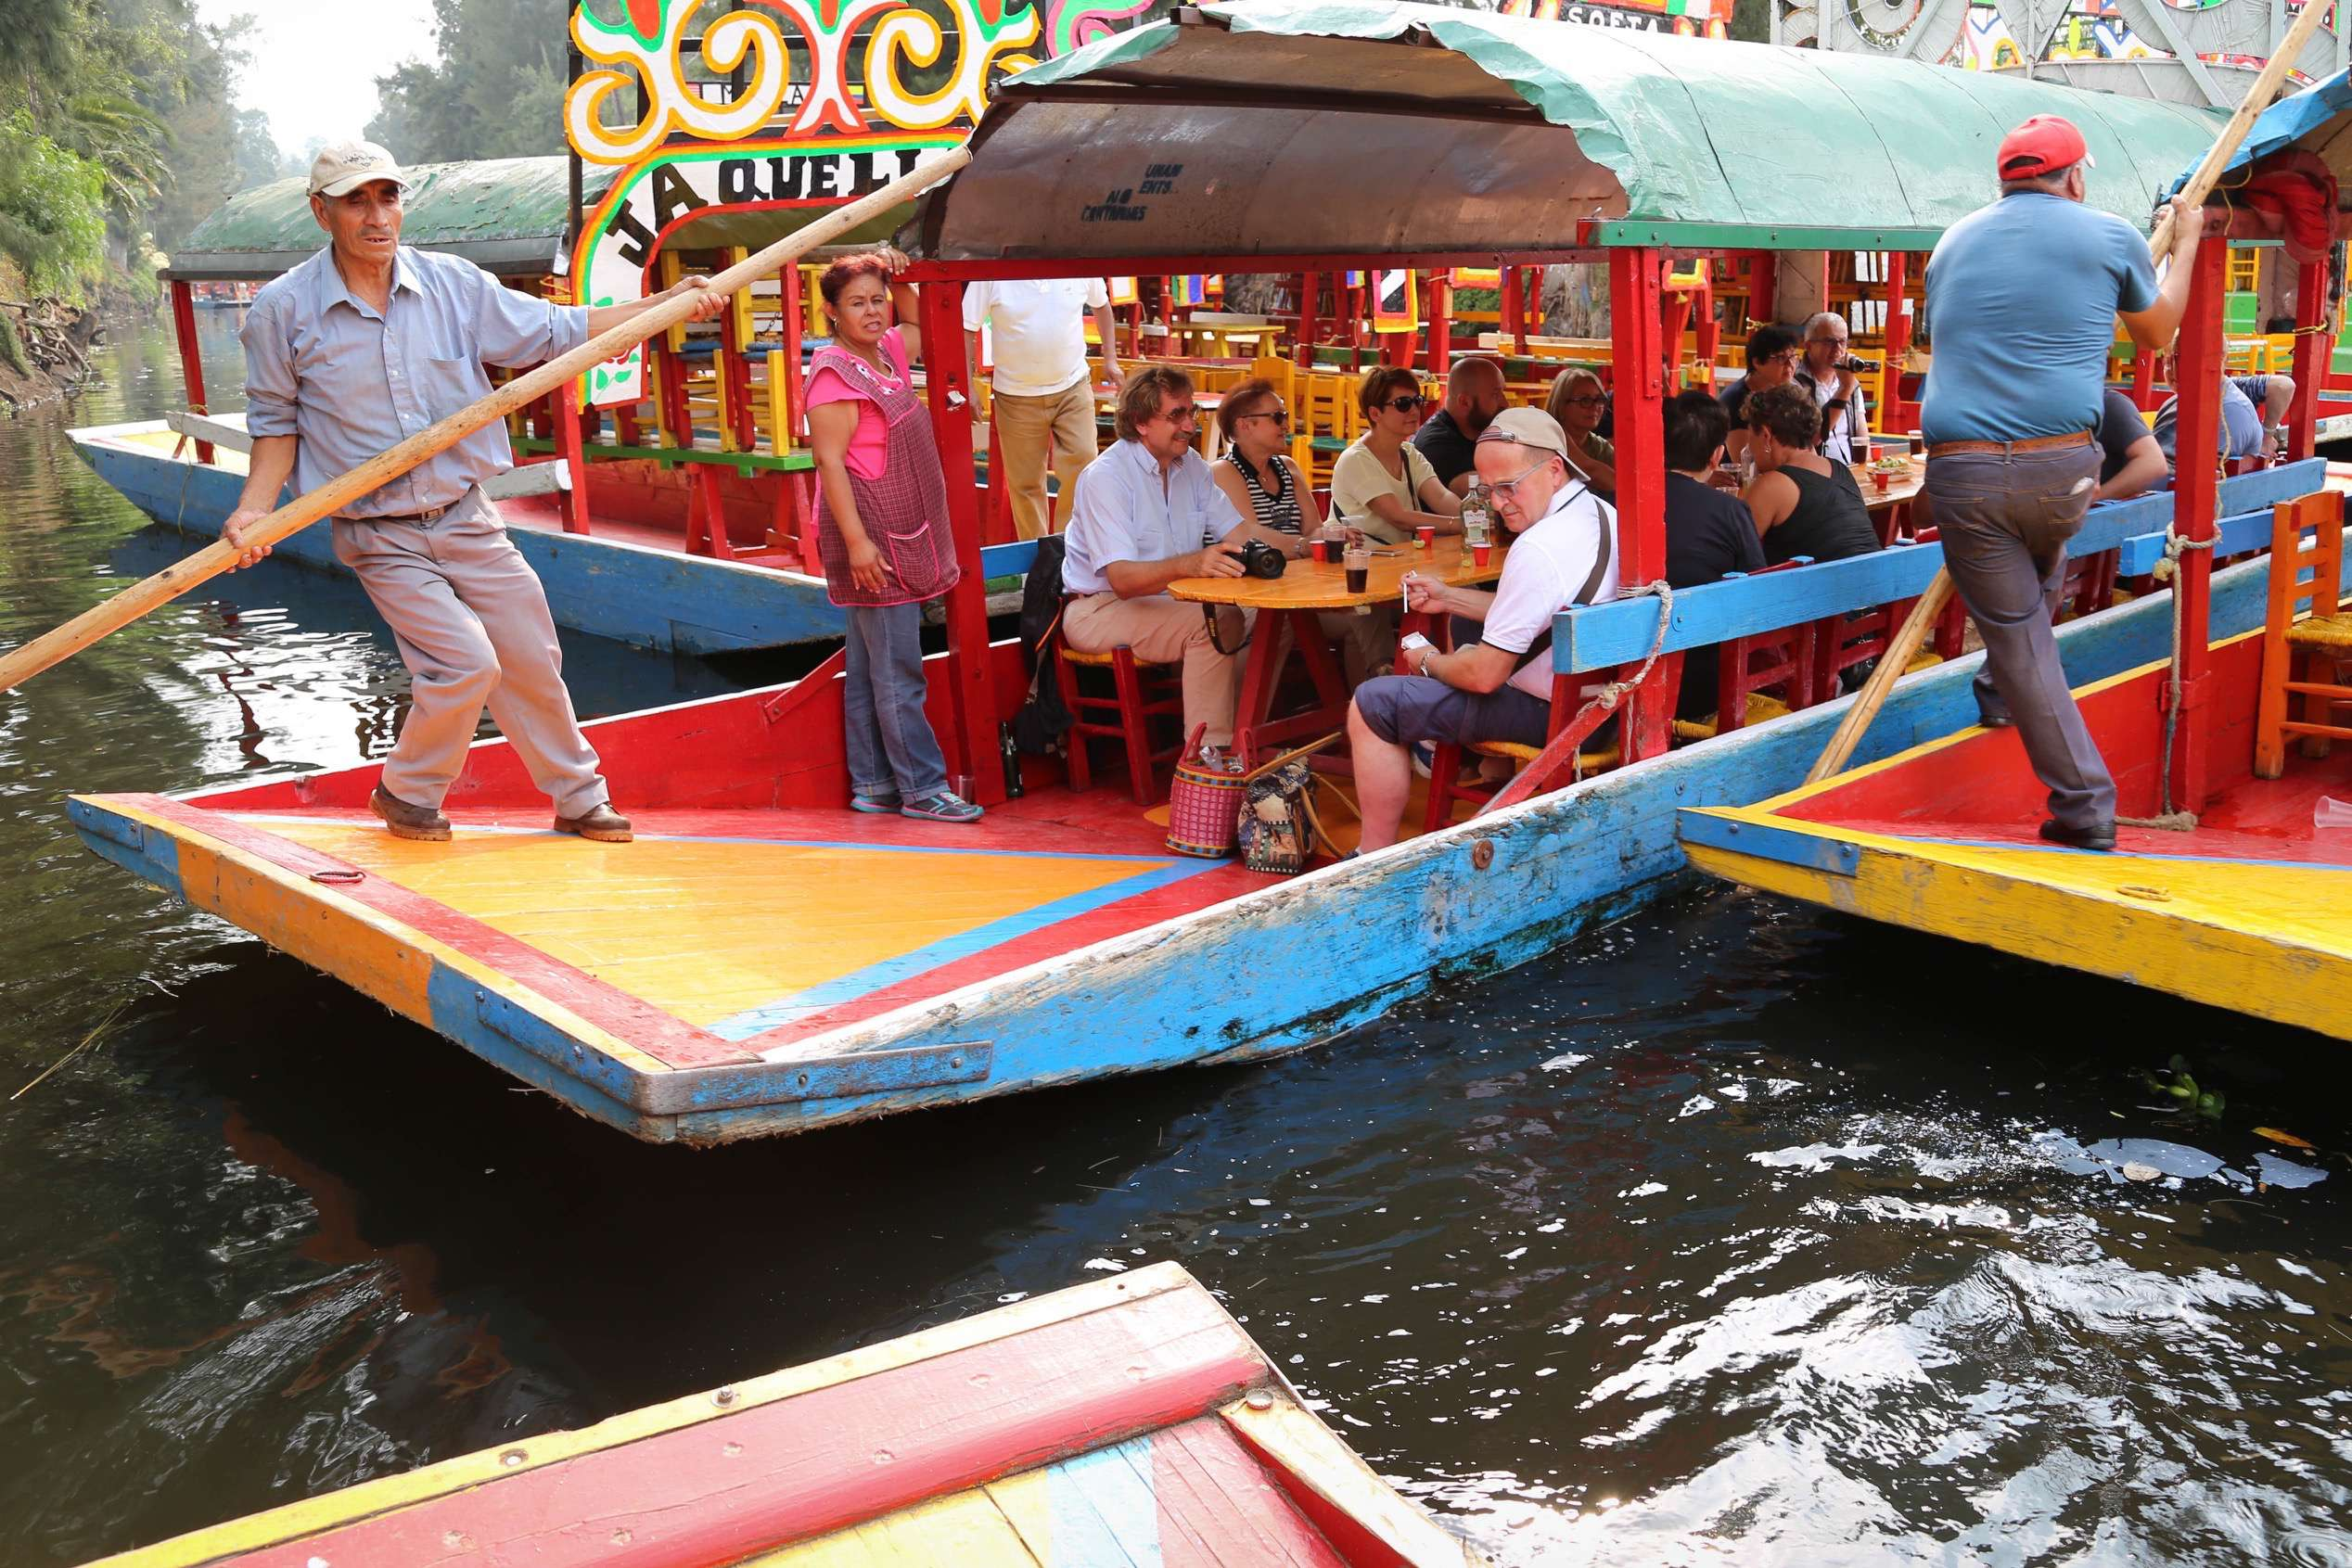 Even on a weekday afternoon, boats must jockey for position along the canals.